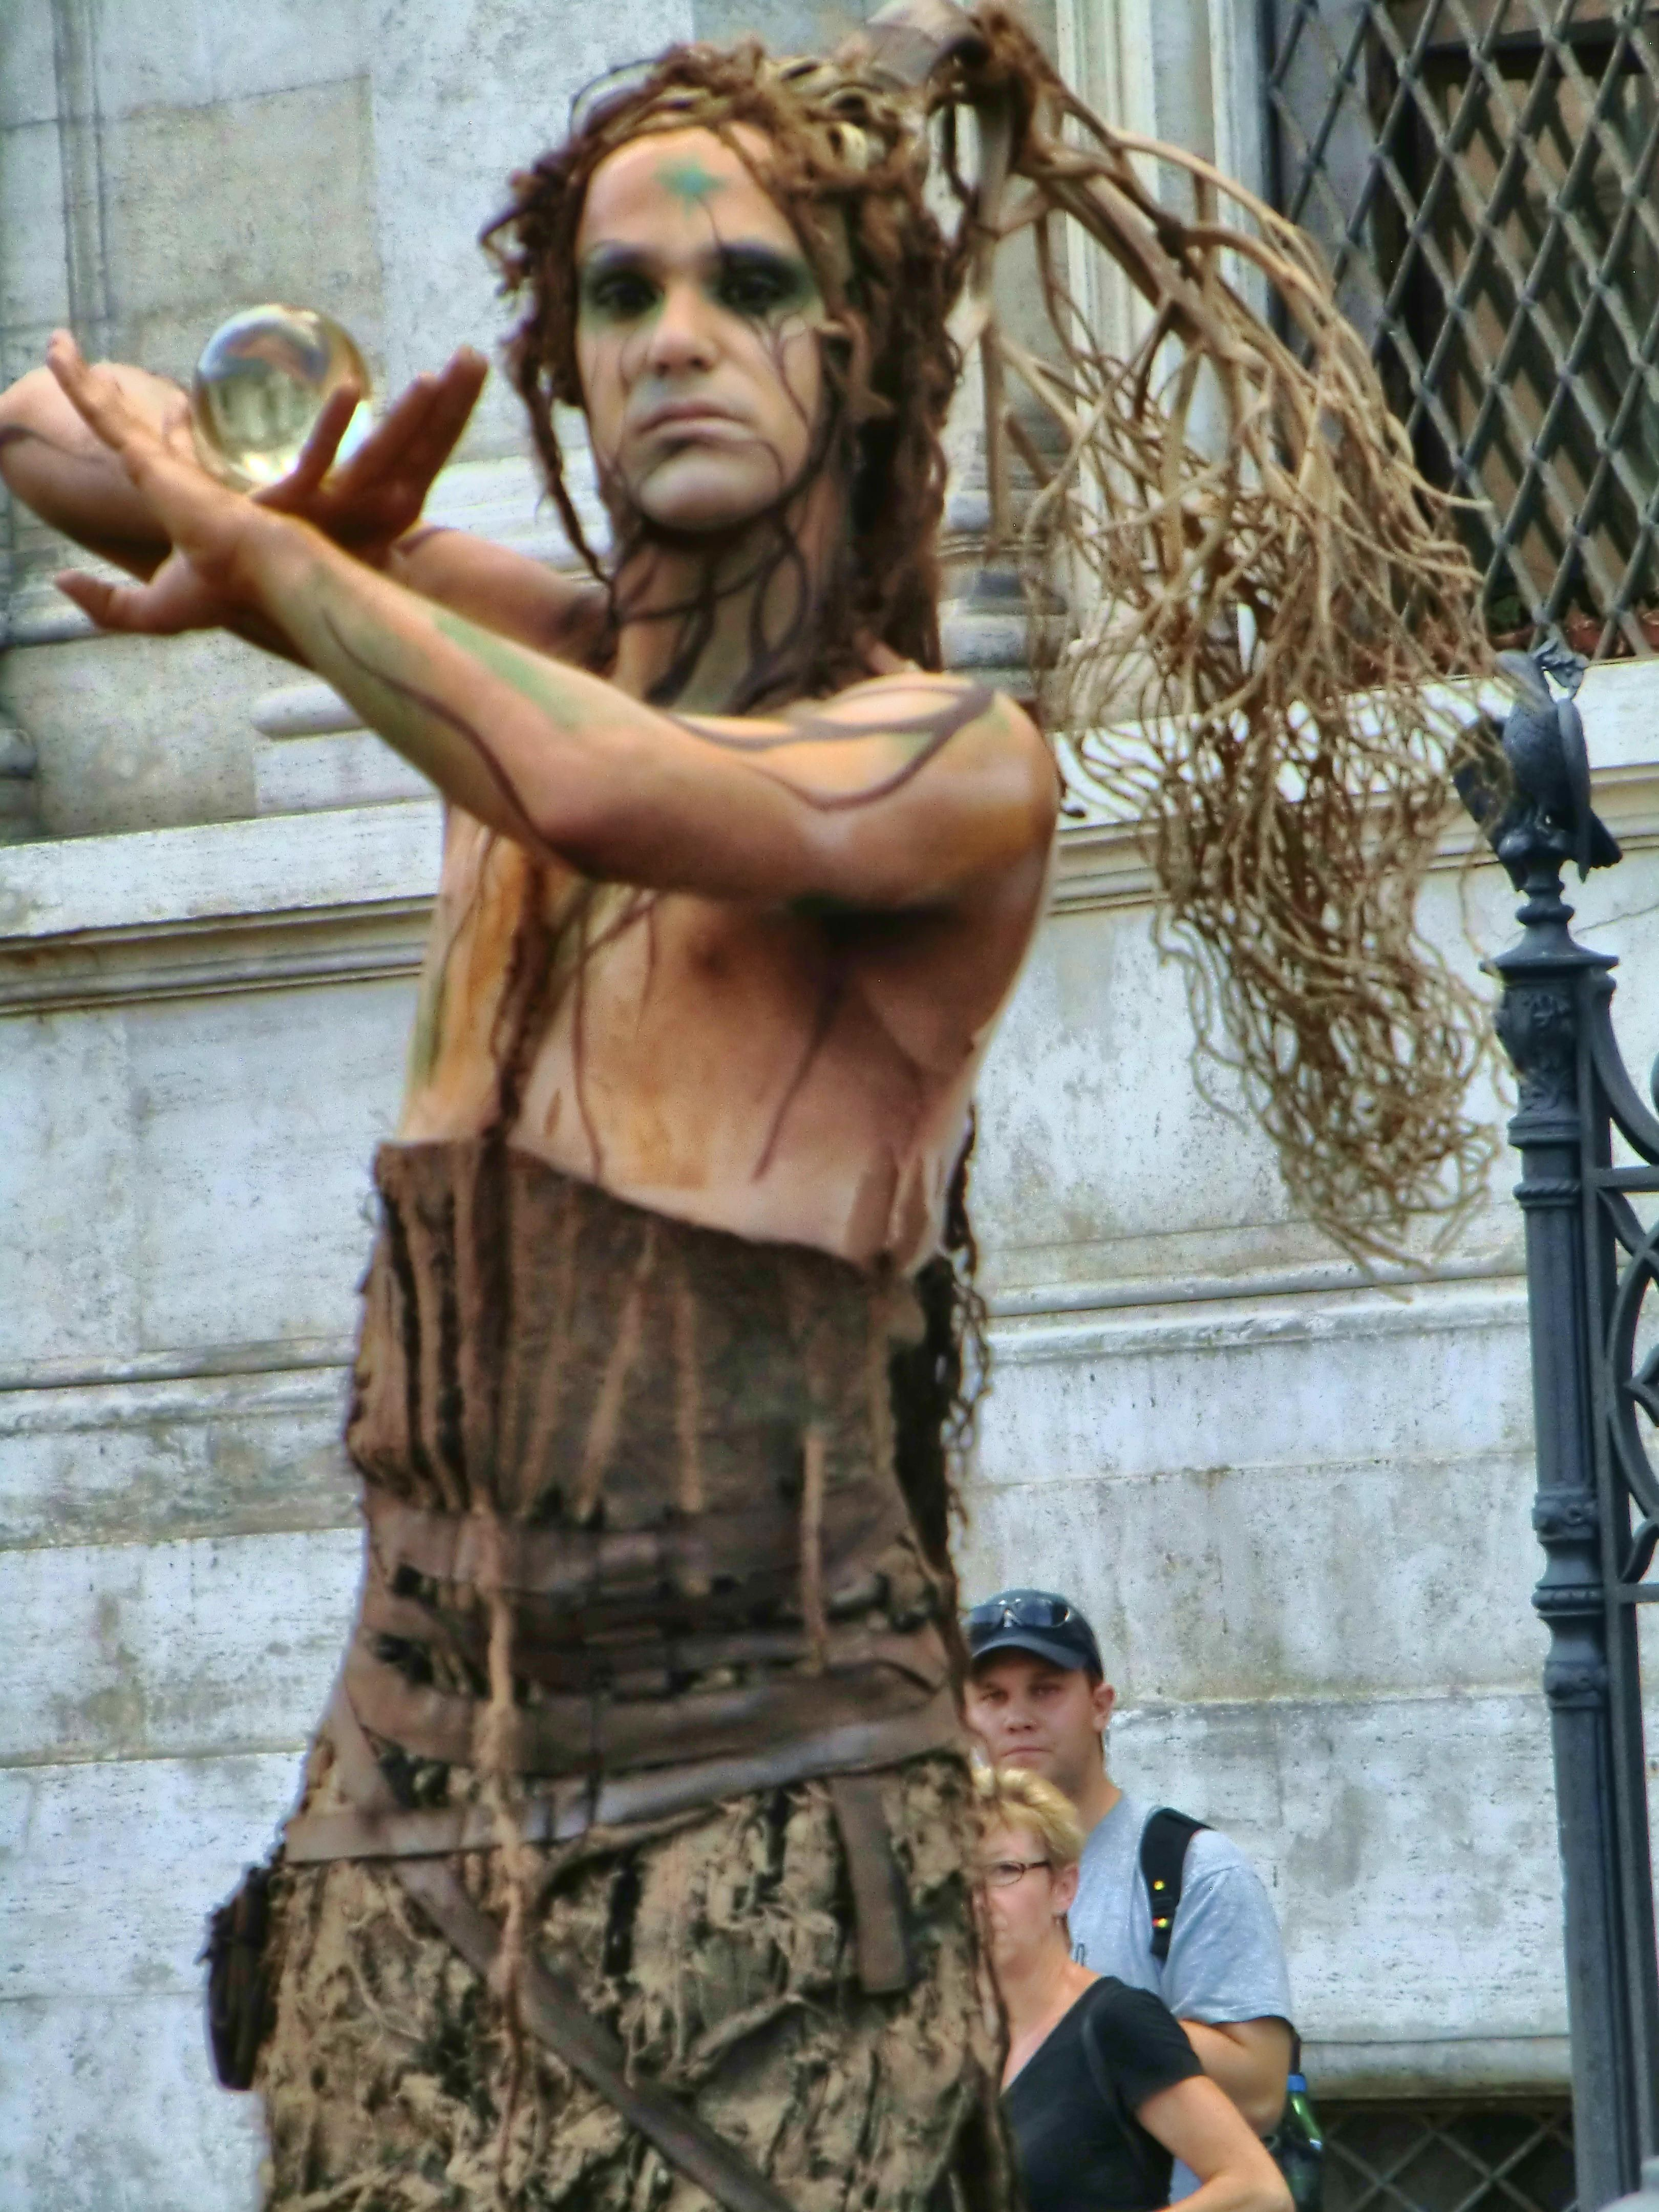 Living statue in Rome